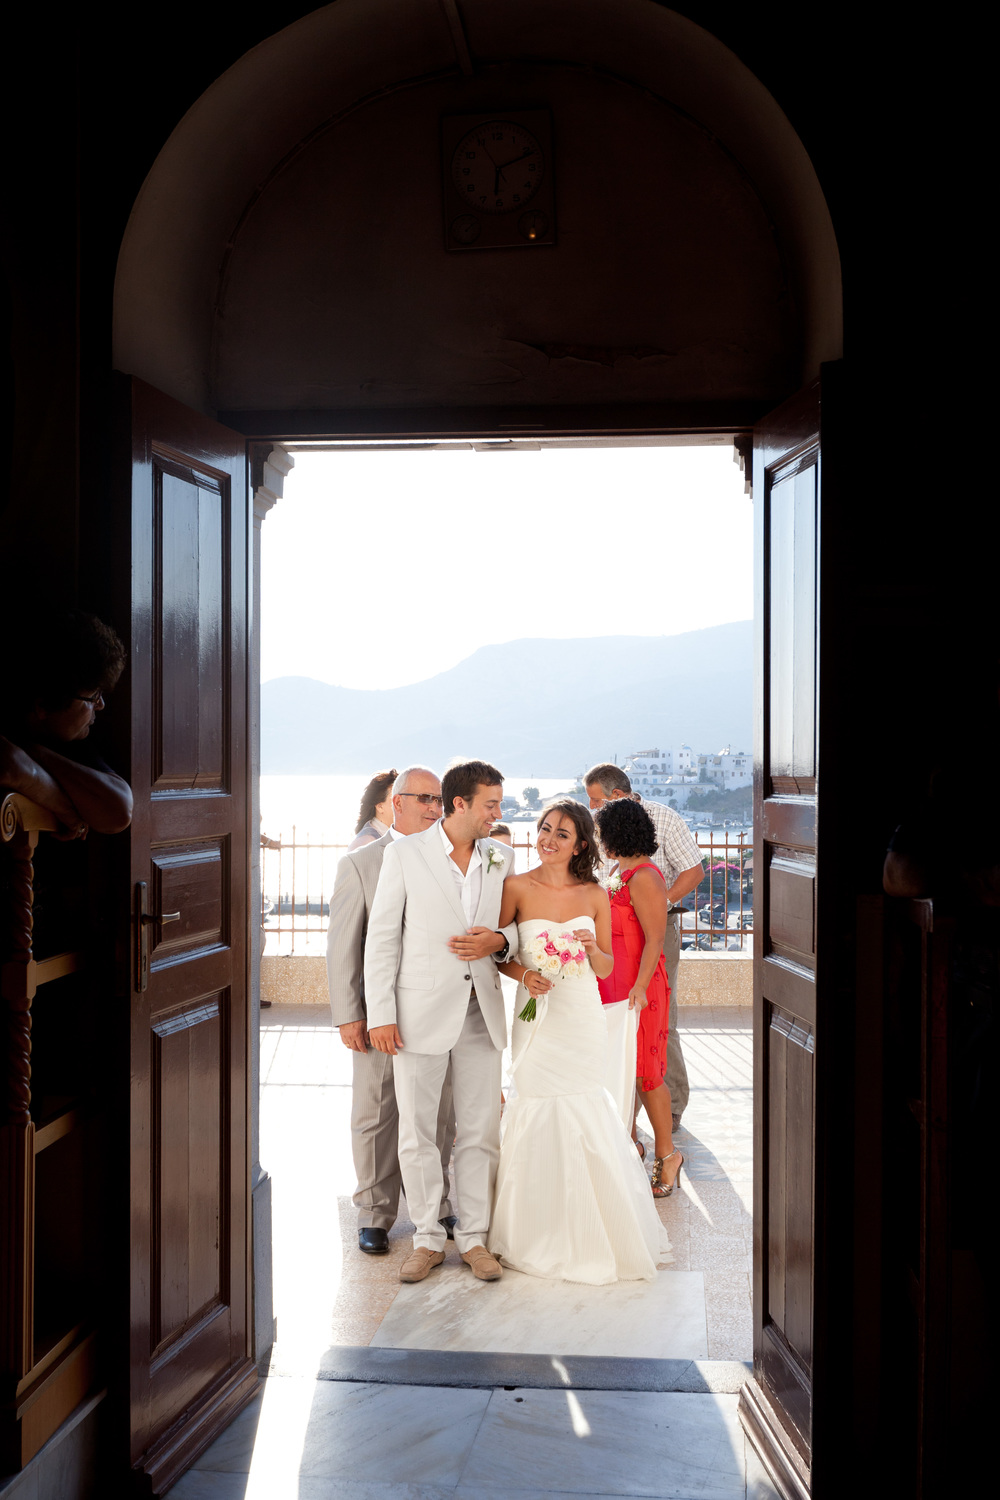 6CarolineMcCredie-Wedding-EleniChris-Greece-0005.jpg